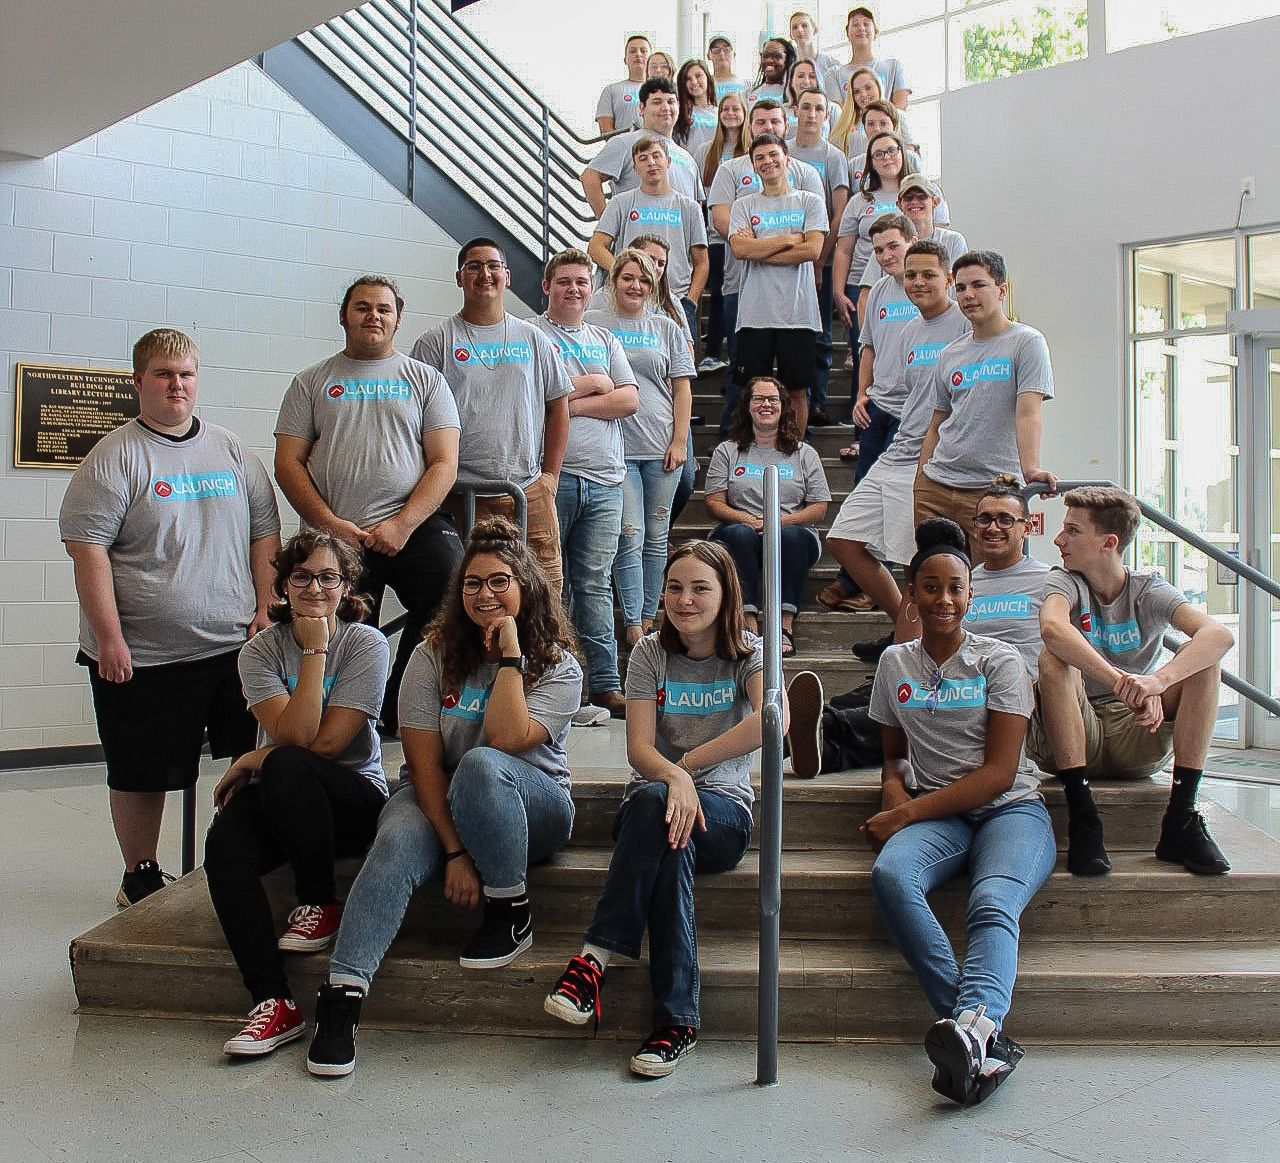 (Northwest Week One is now in the books for the